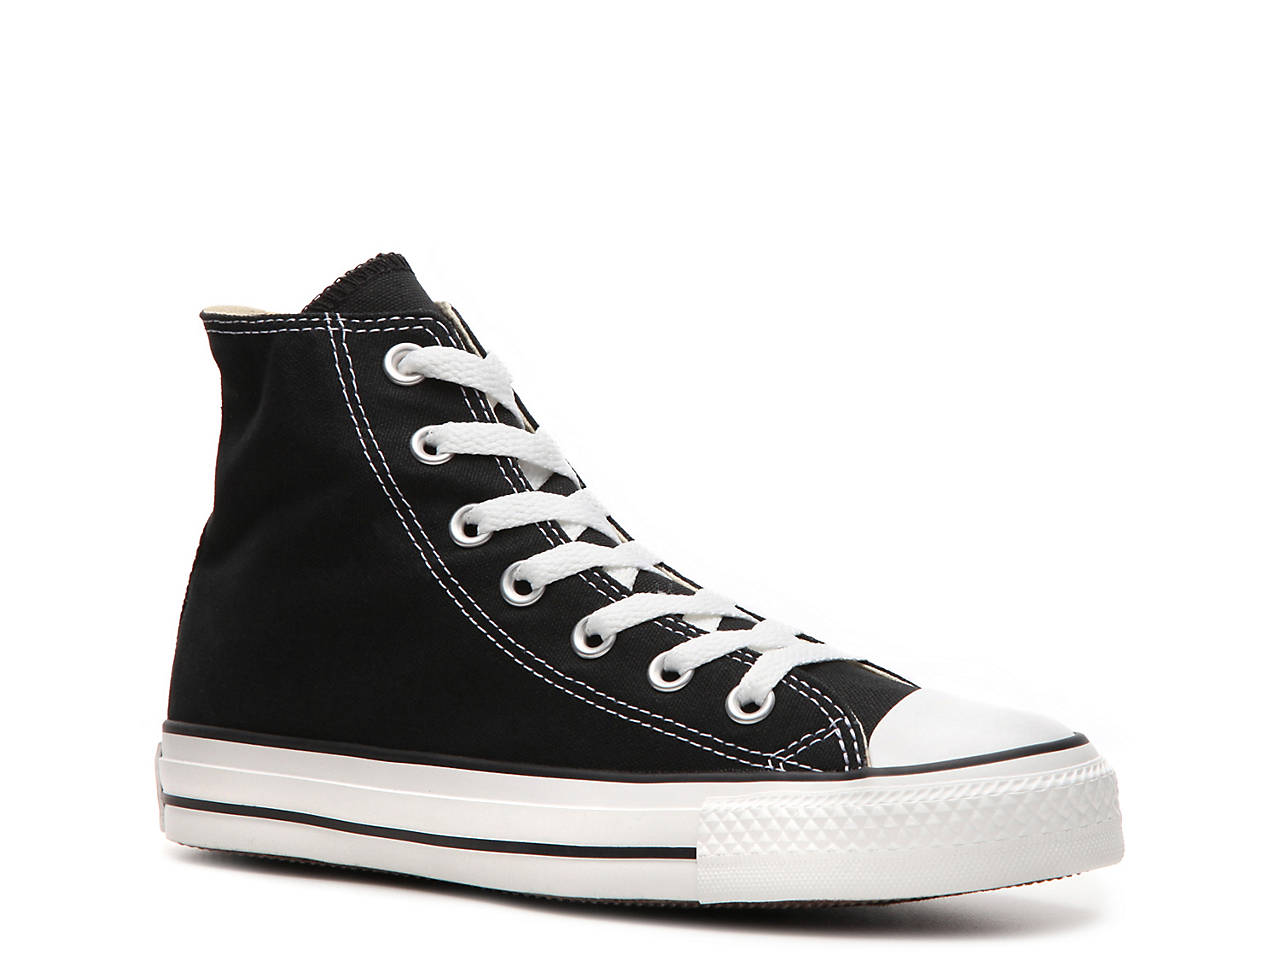 36d7d7bf23 Converse Chuck Taylor All Star High-Top Sneaker - Women's Women's ...